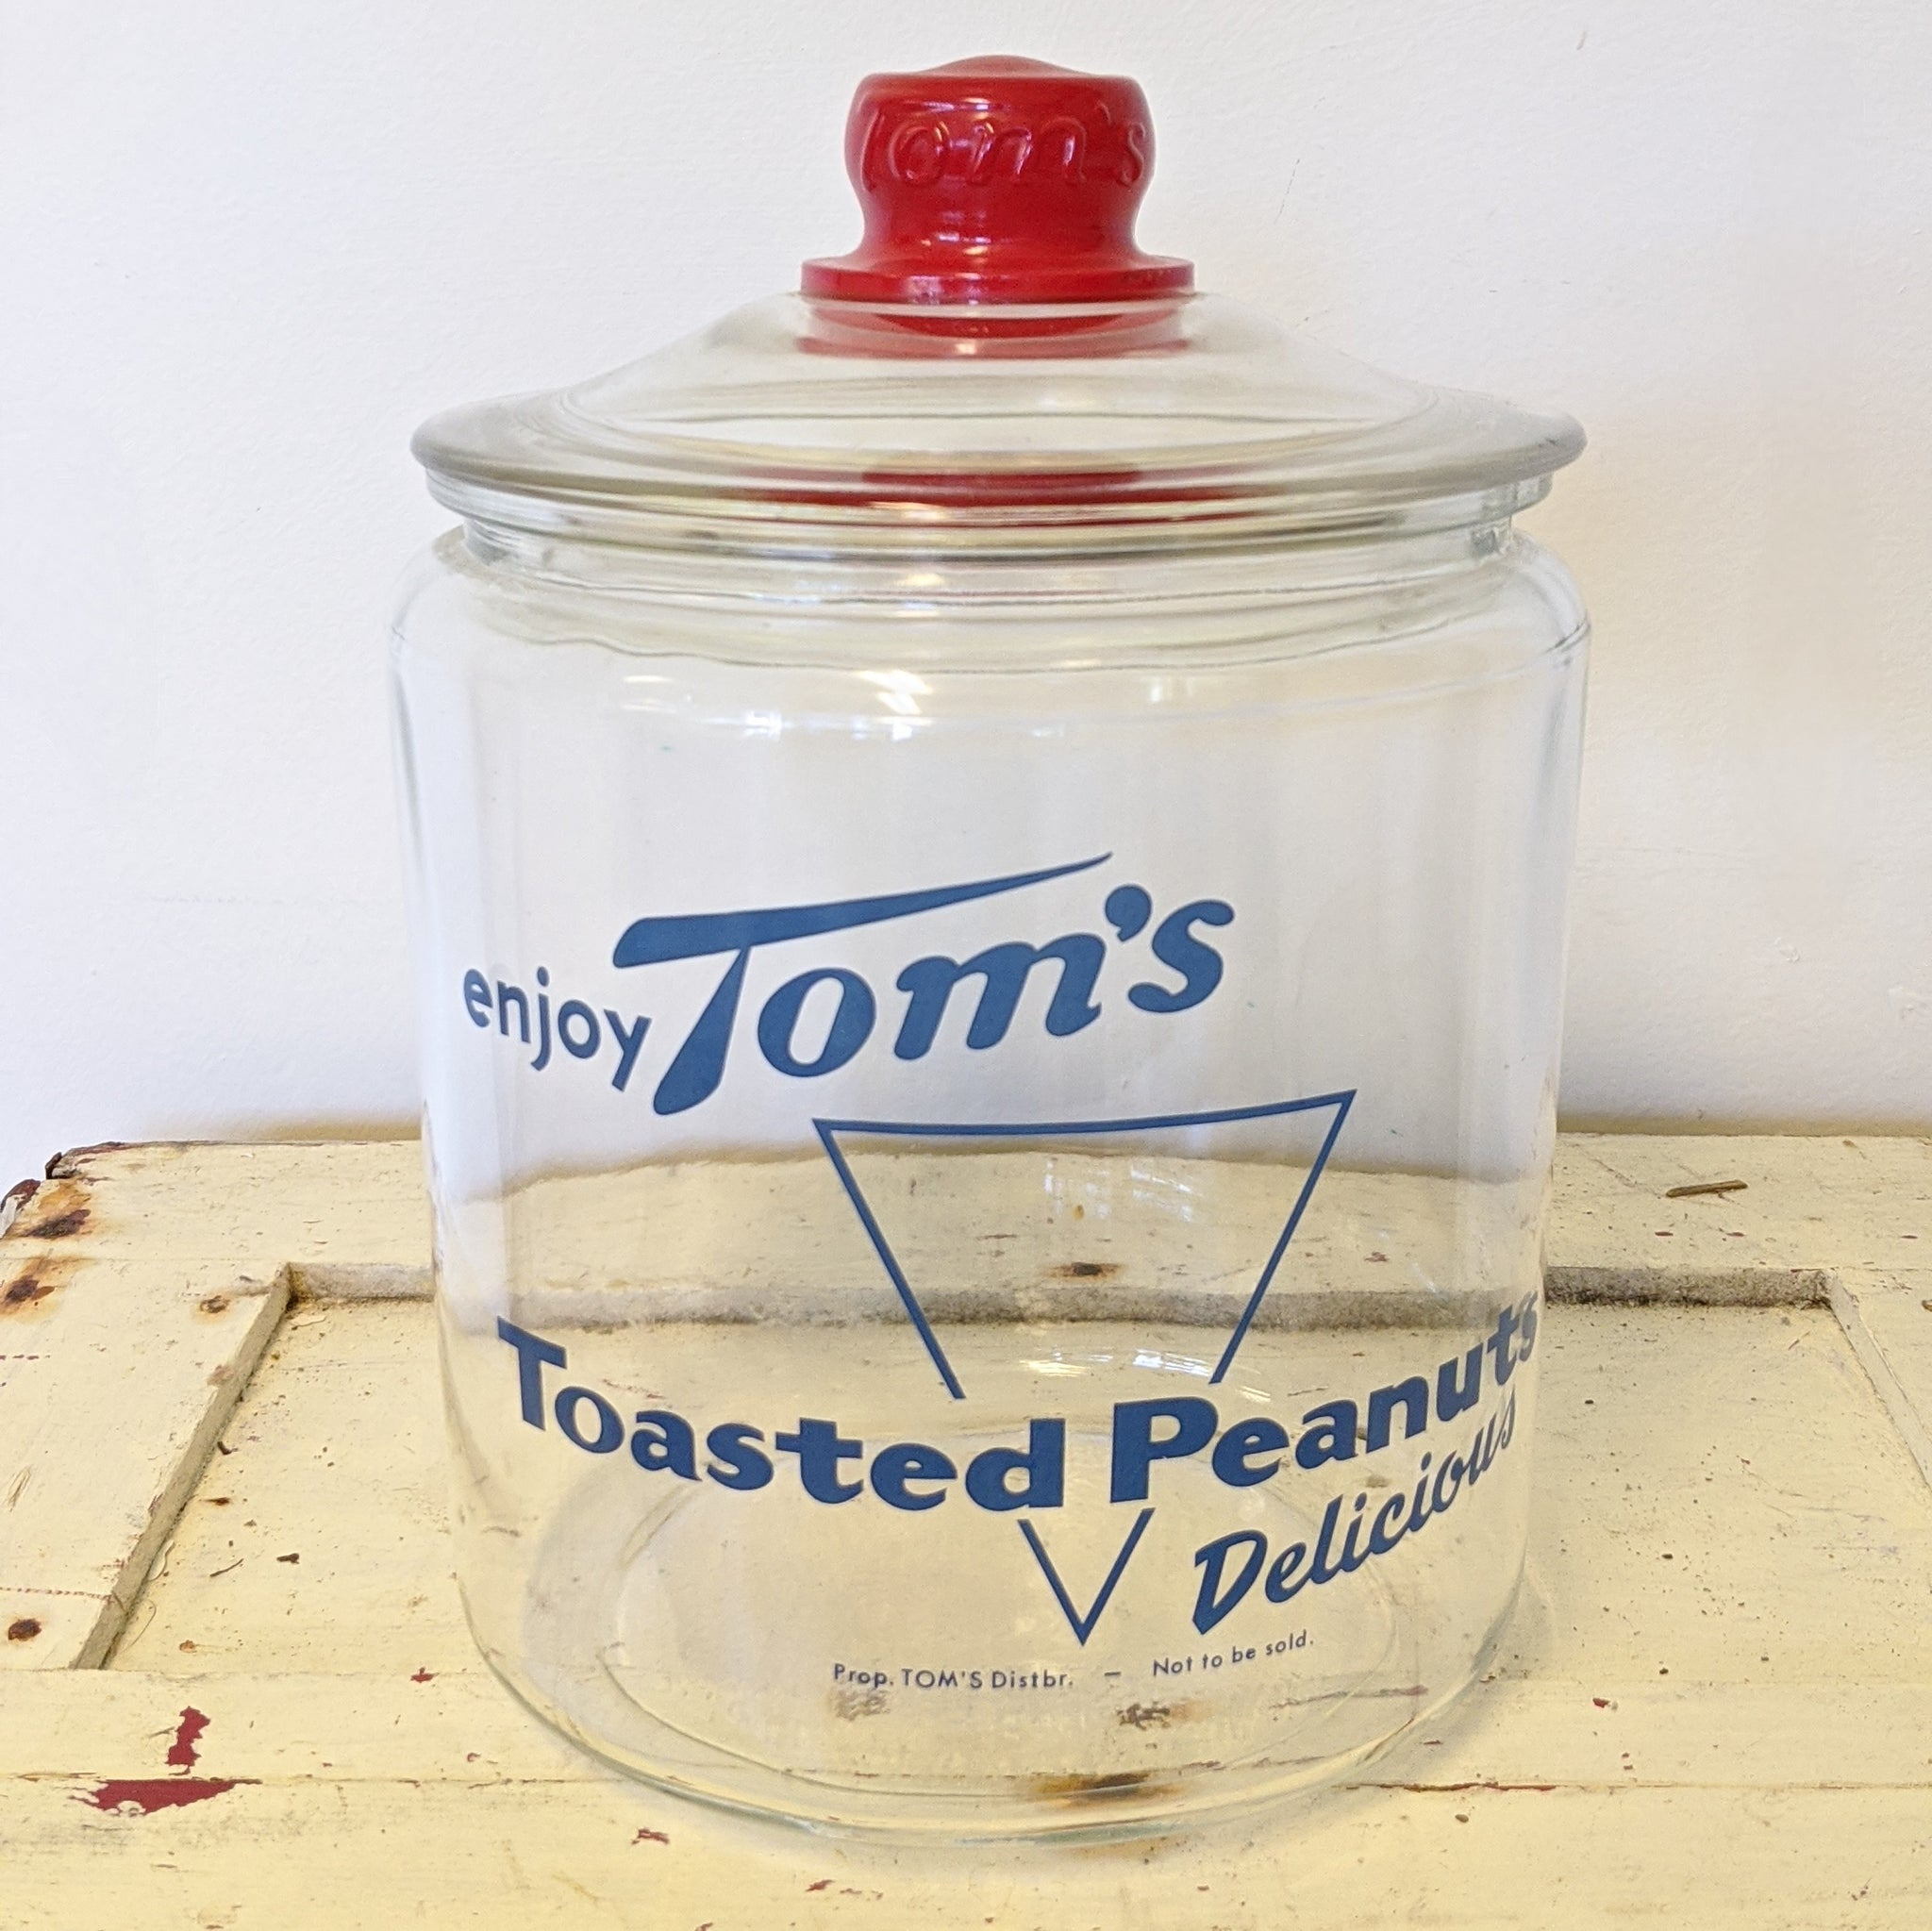 Wide, clear jar with blue lettering and red lid handle